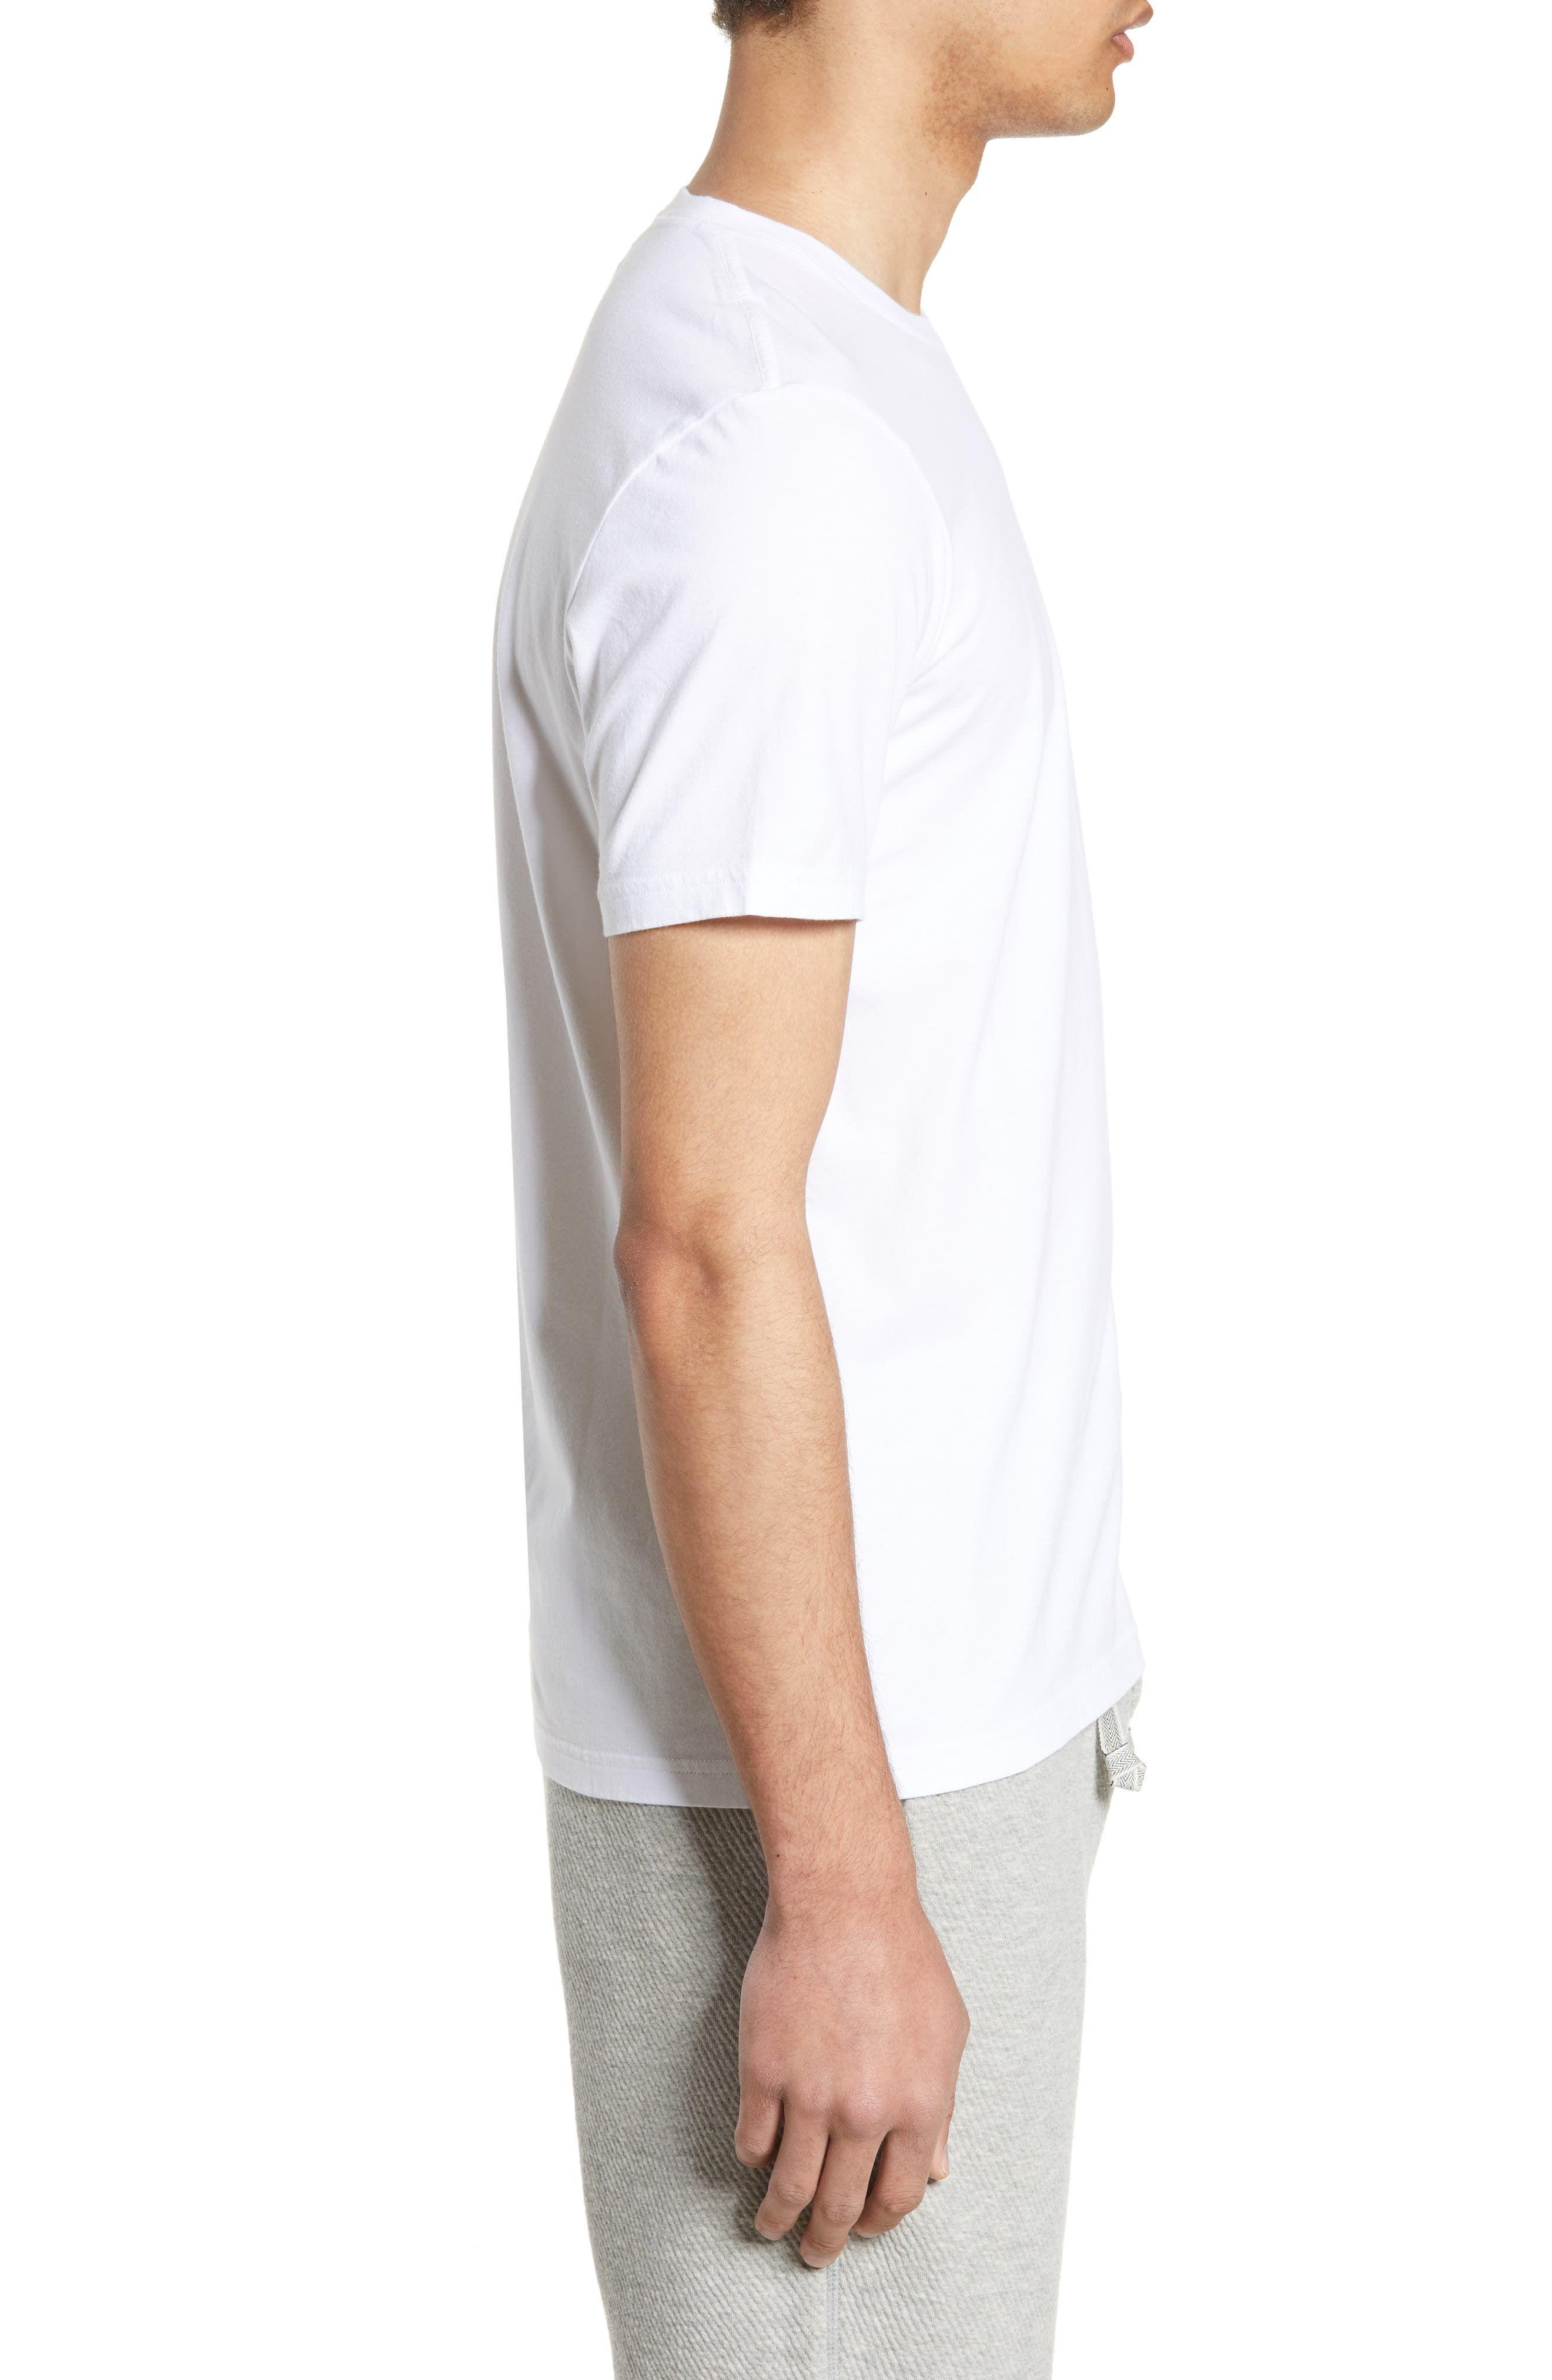 WINGS + HORNS, Short Sleeve Crewneck T-Shirt, Alternate thumbnail 3, color, WHITE